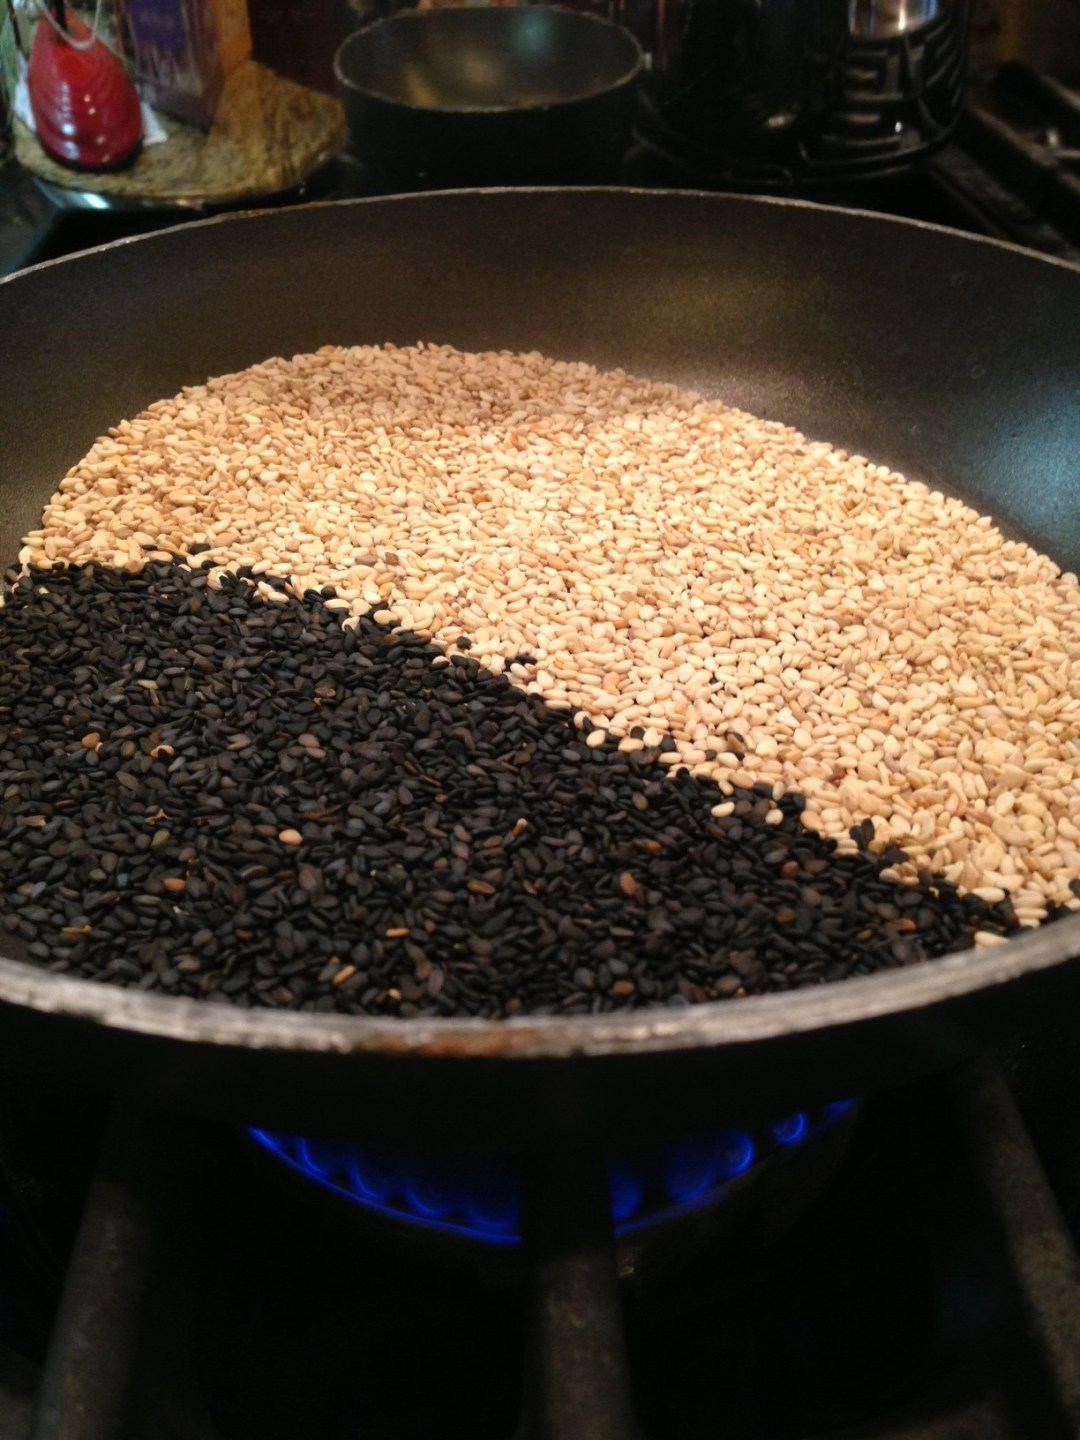 sesame seeds pan